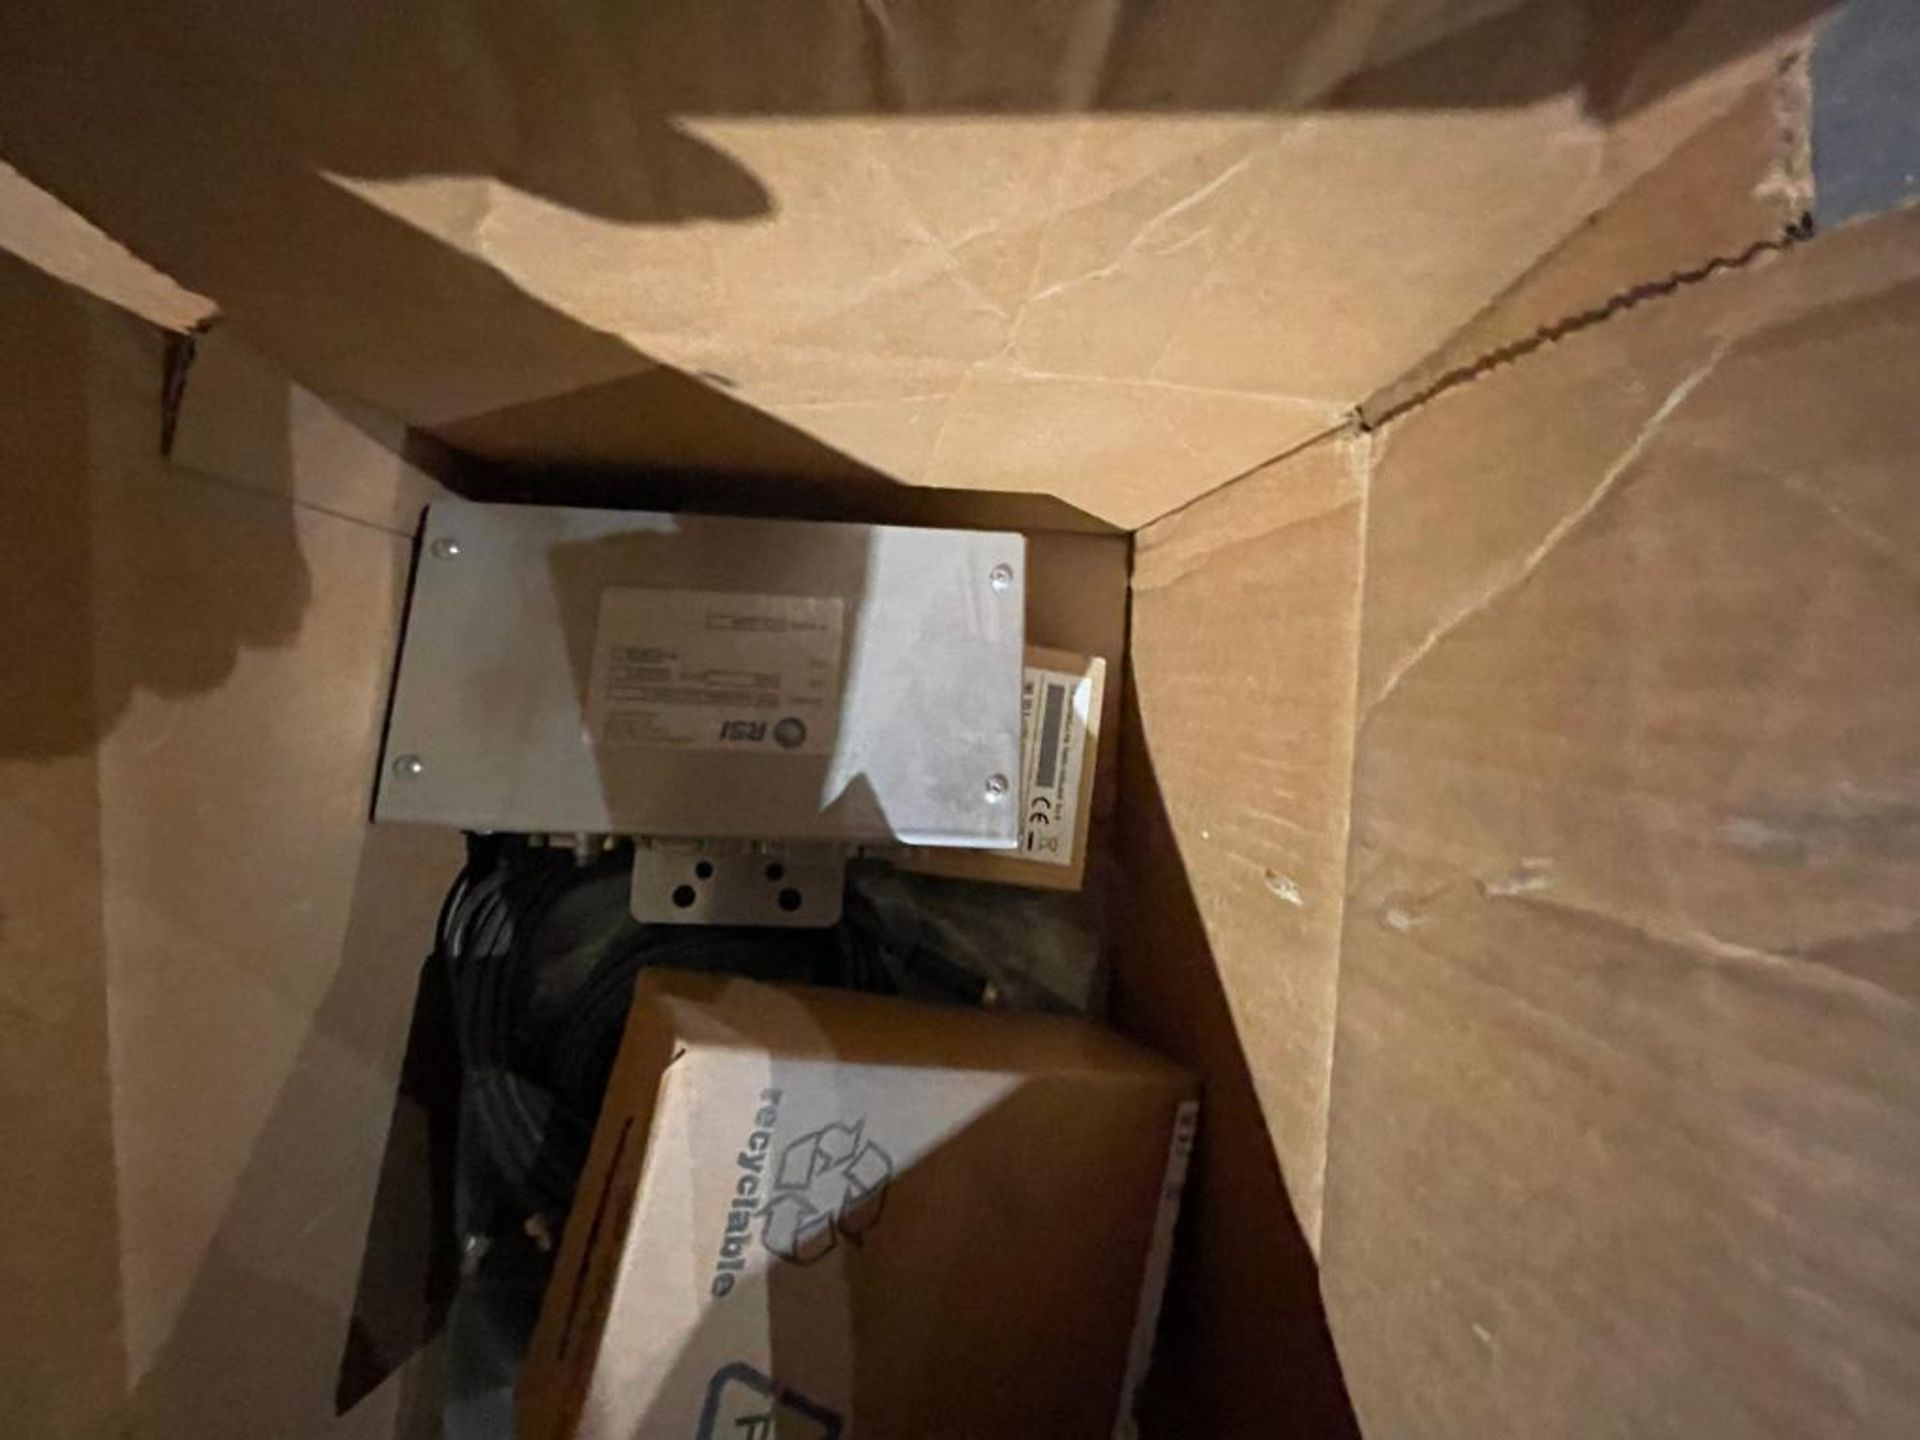 pallet of miscellaneous electronics - Image 8 of 16